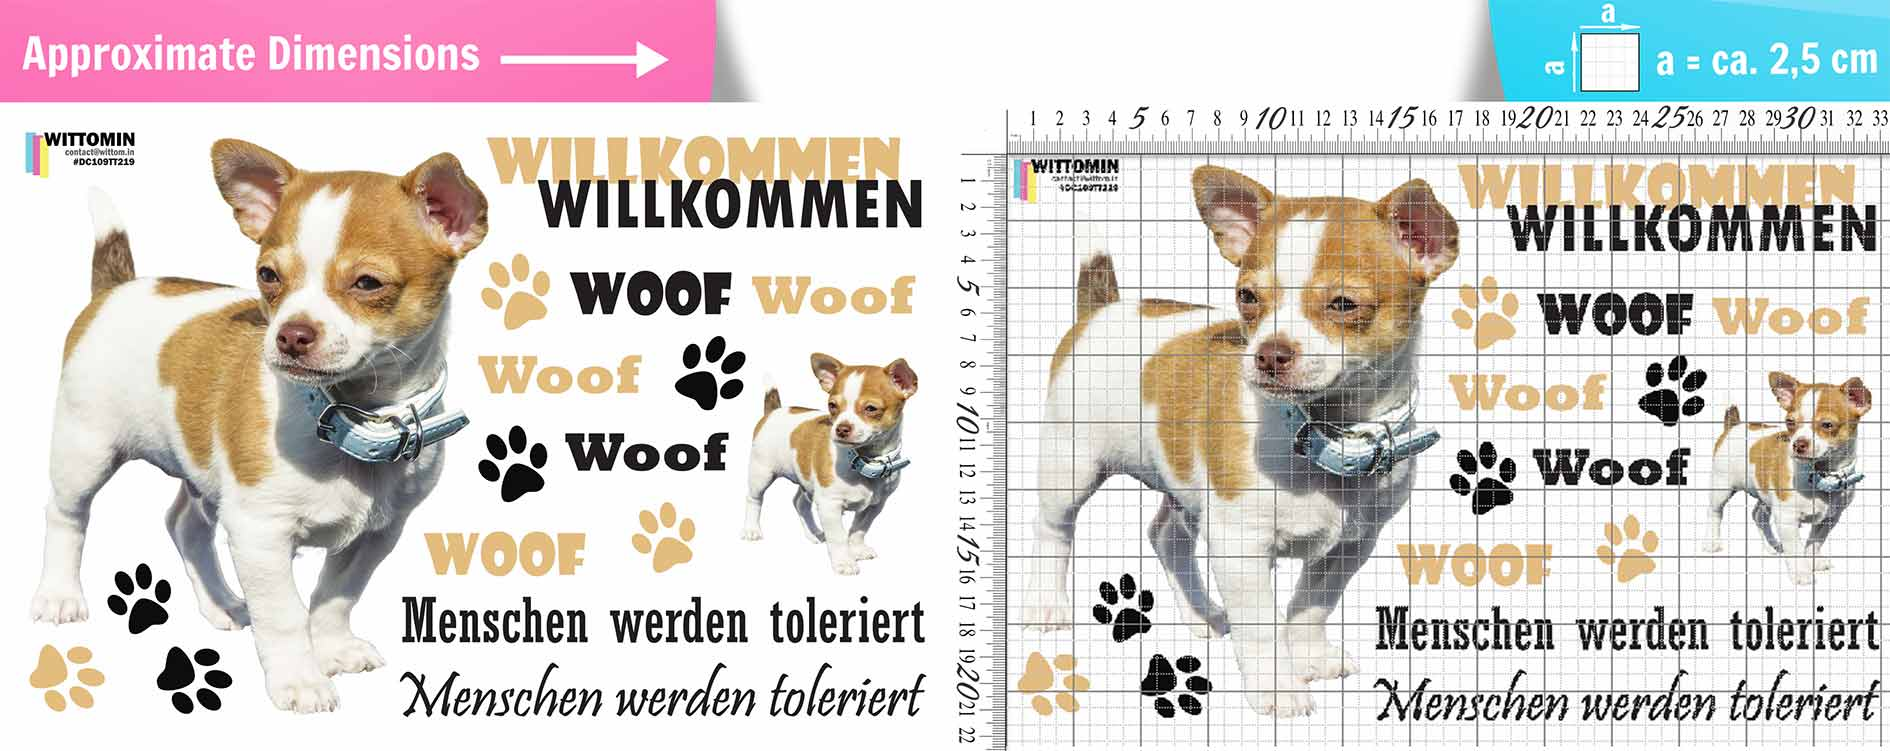 Welcome - toy terrier dog sticker set from Wittomin